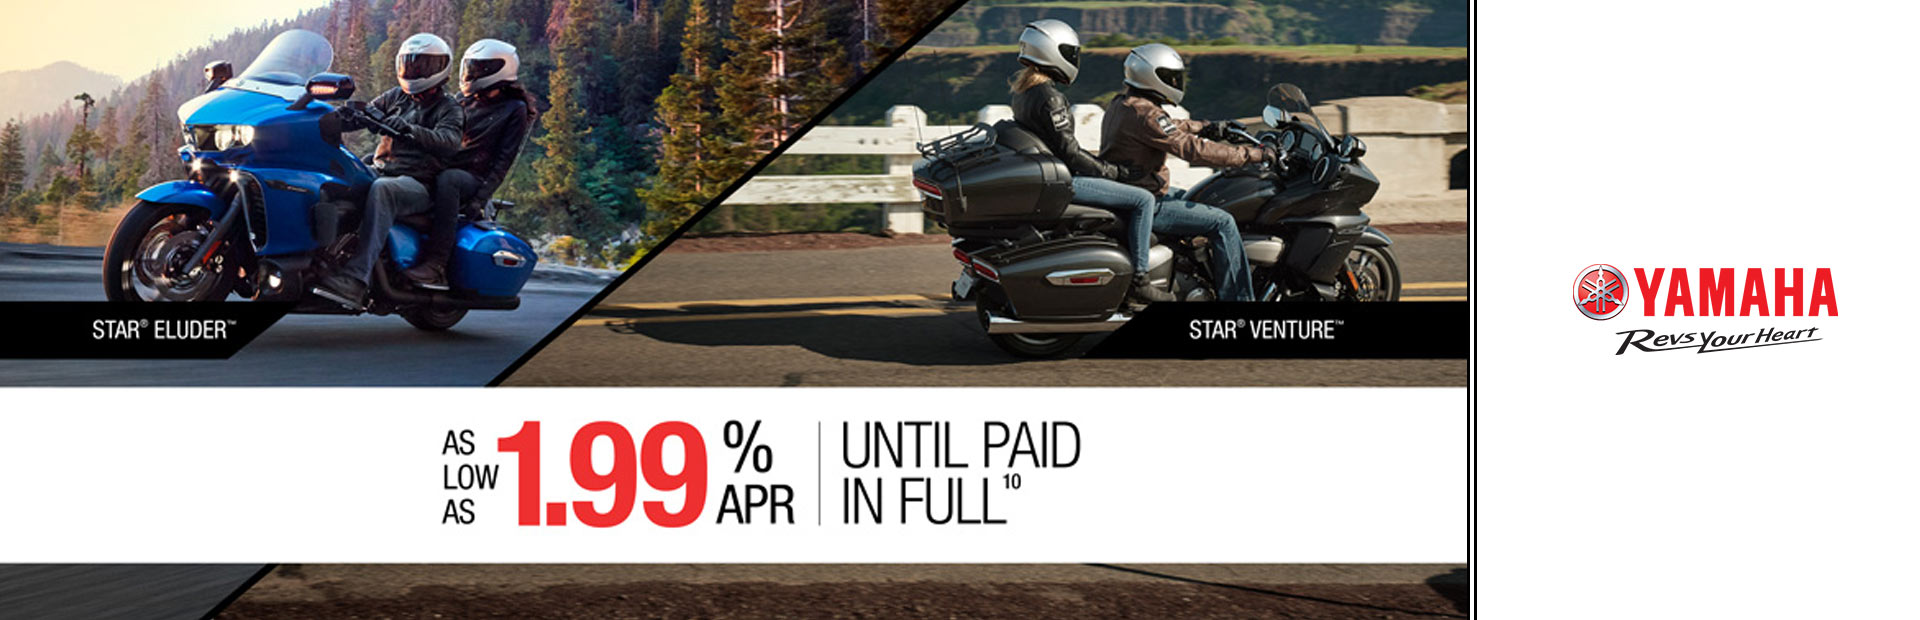 Yamaha: As Low As 1.99% APR Until Paid In Full (Touring)